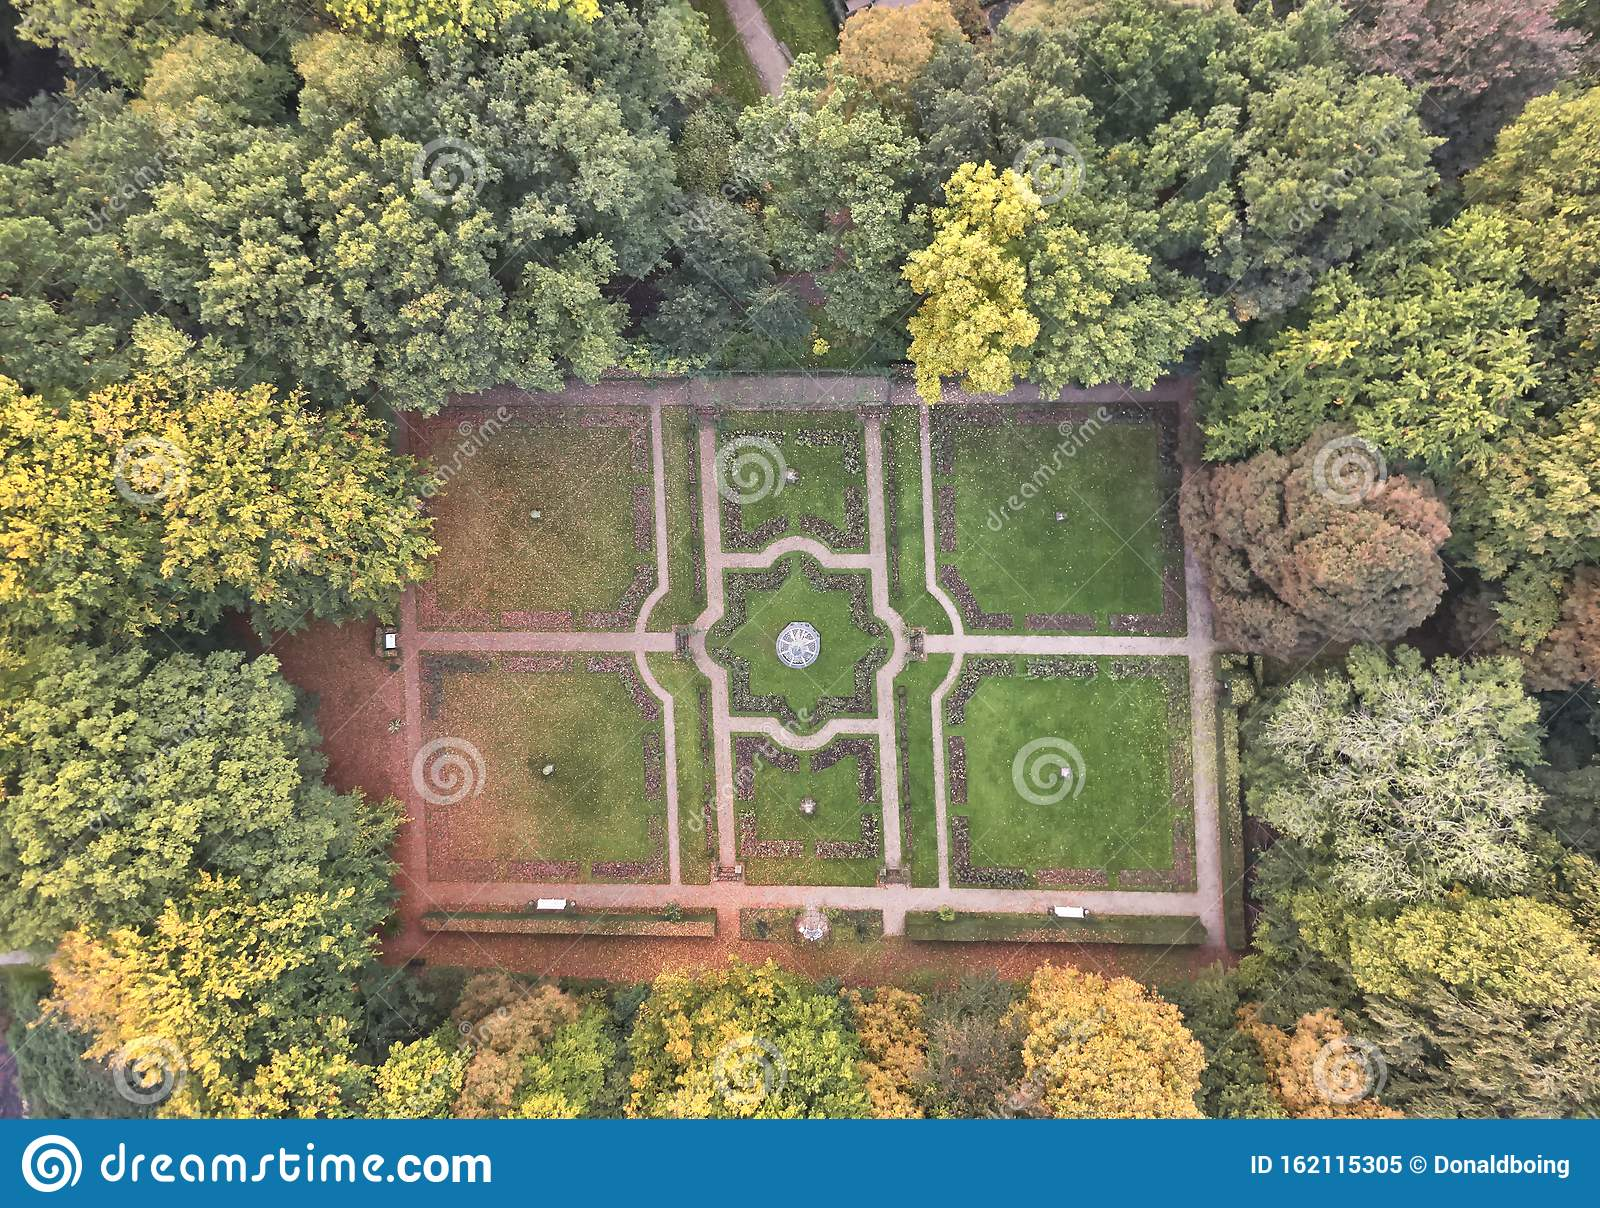 Top Down Aerial View Of Landscape Garden With Symmetrical Design And Shapes Stock Image Image Of Breukelen Foliage 162115305